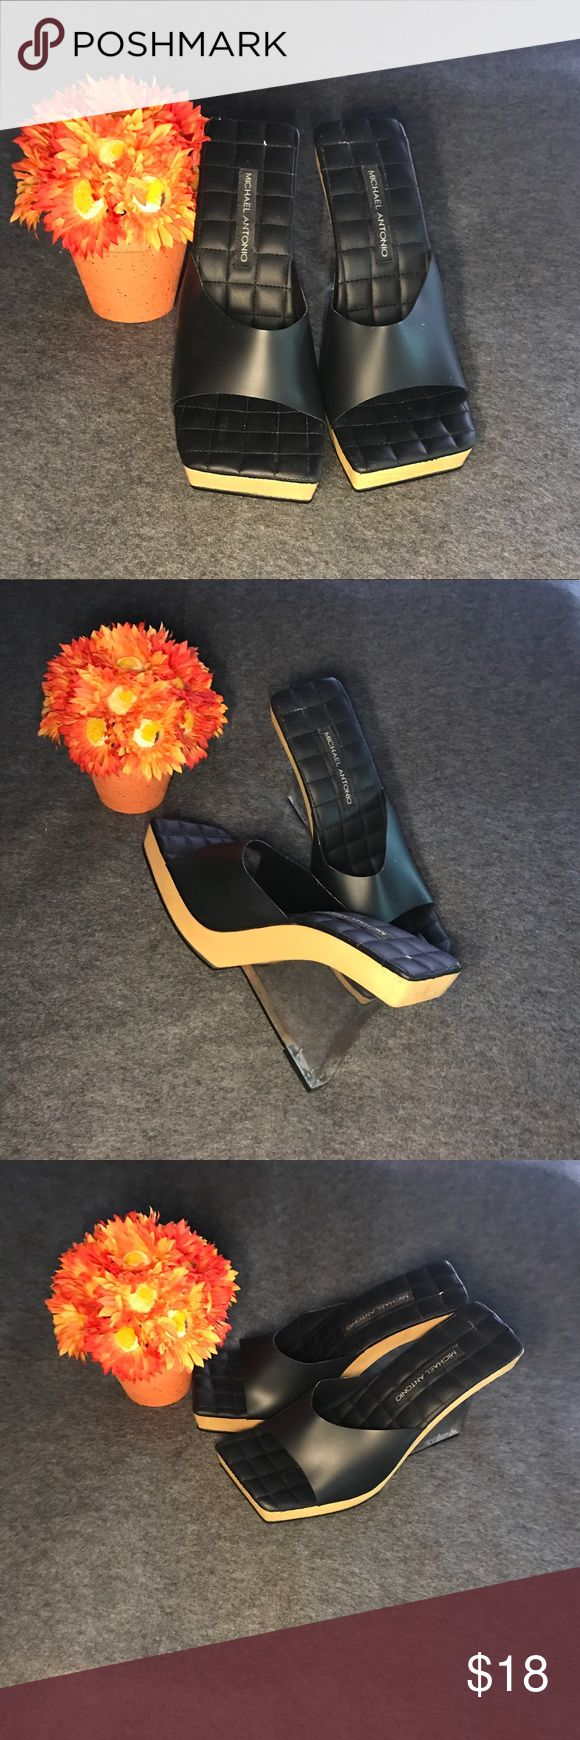 👠Unique Fun Acrylic Heels👠 👠Unique Fun Acrylic Heels👠 These fun dolls are cool wear. Always an attention grabber. Slightly used, black rubber upper band, quilted foot area, and clear heel.🛍 Michael Antonio Shoes Heels